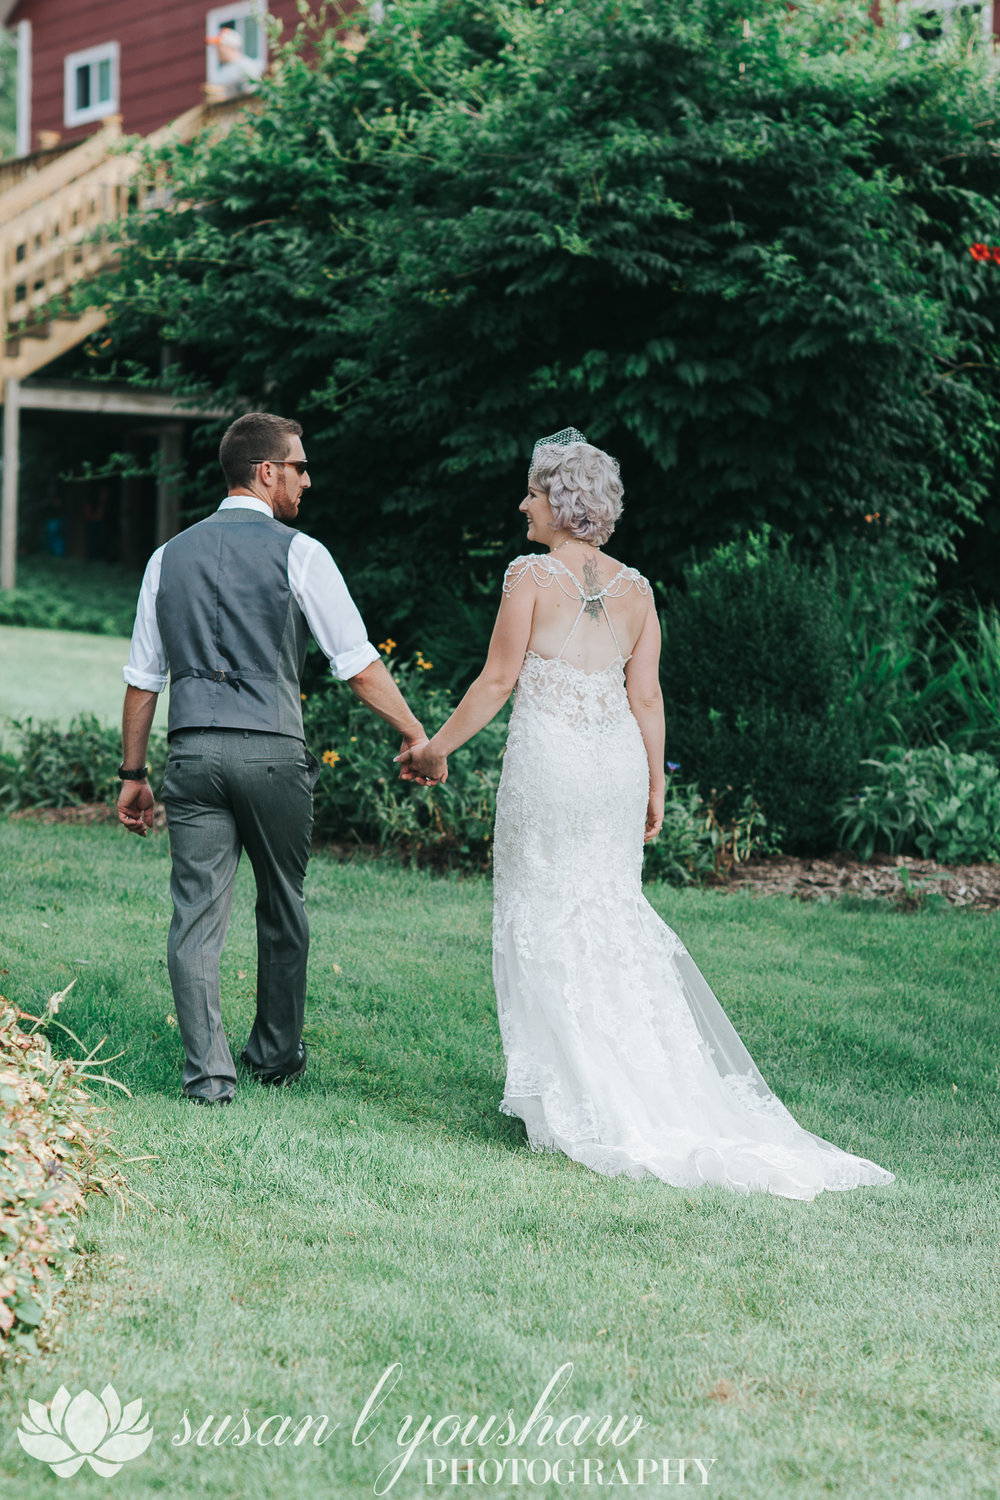 BLOG Kissy and Zane Diehl 07-14-2018 SLY Photography-155.jpg